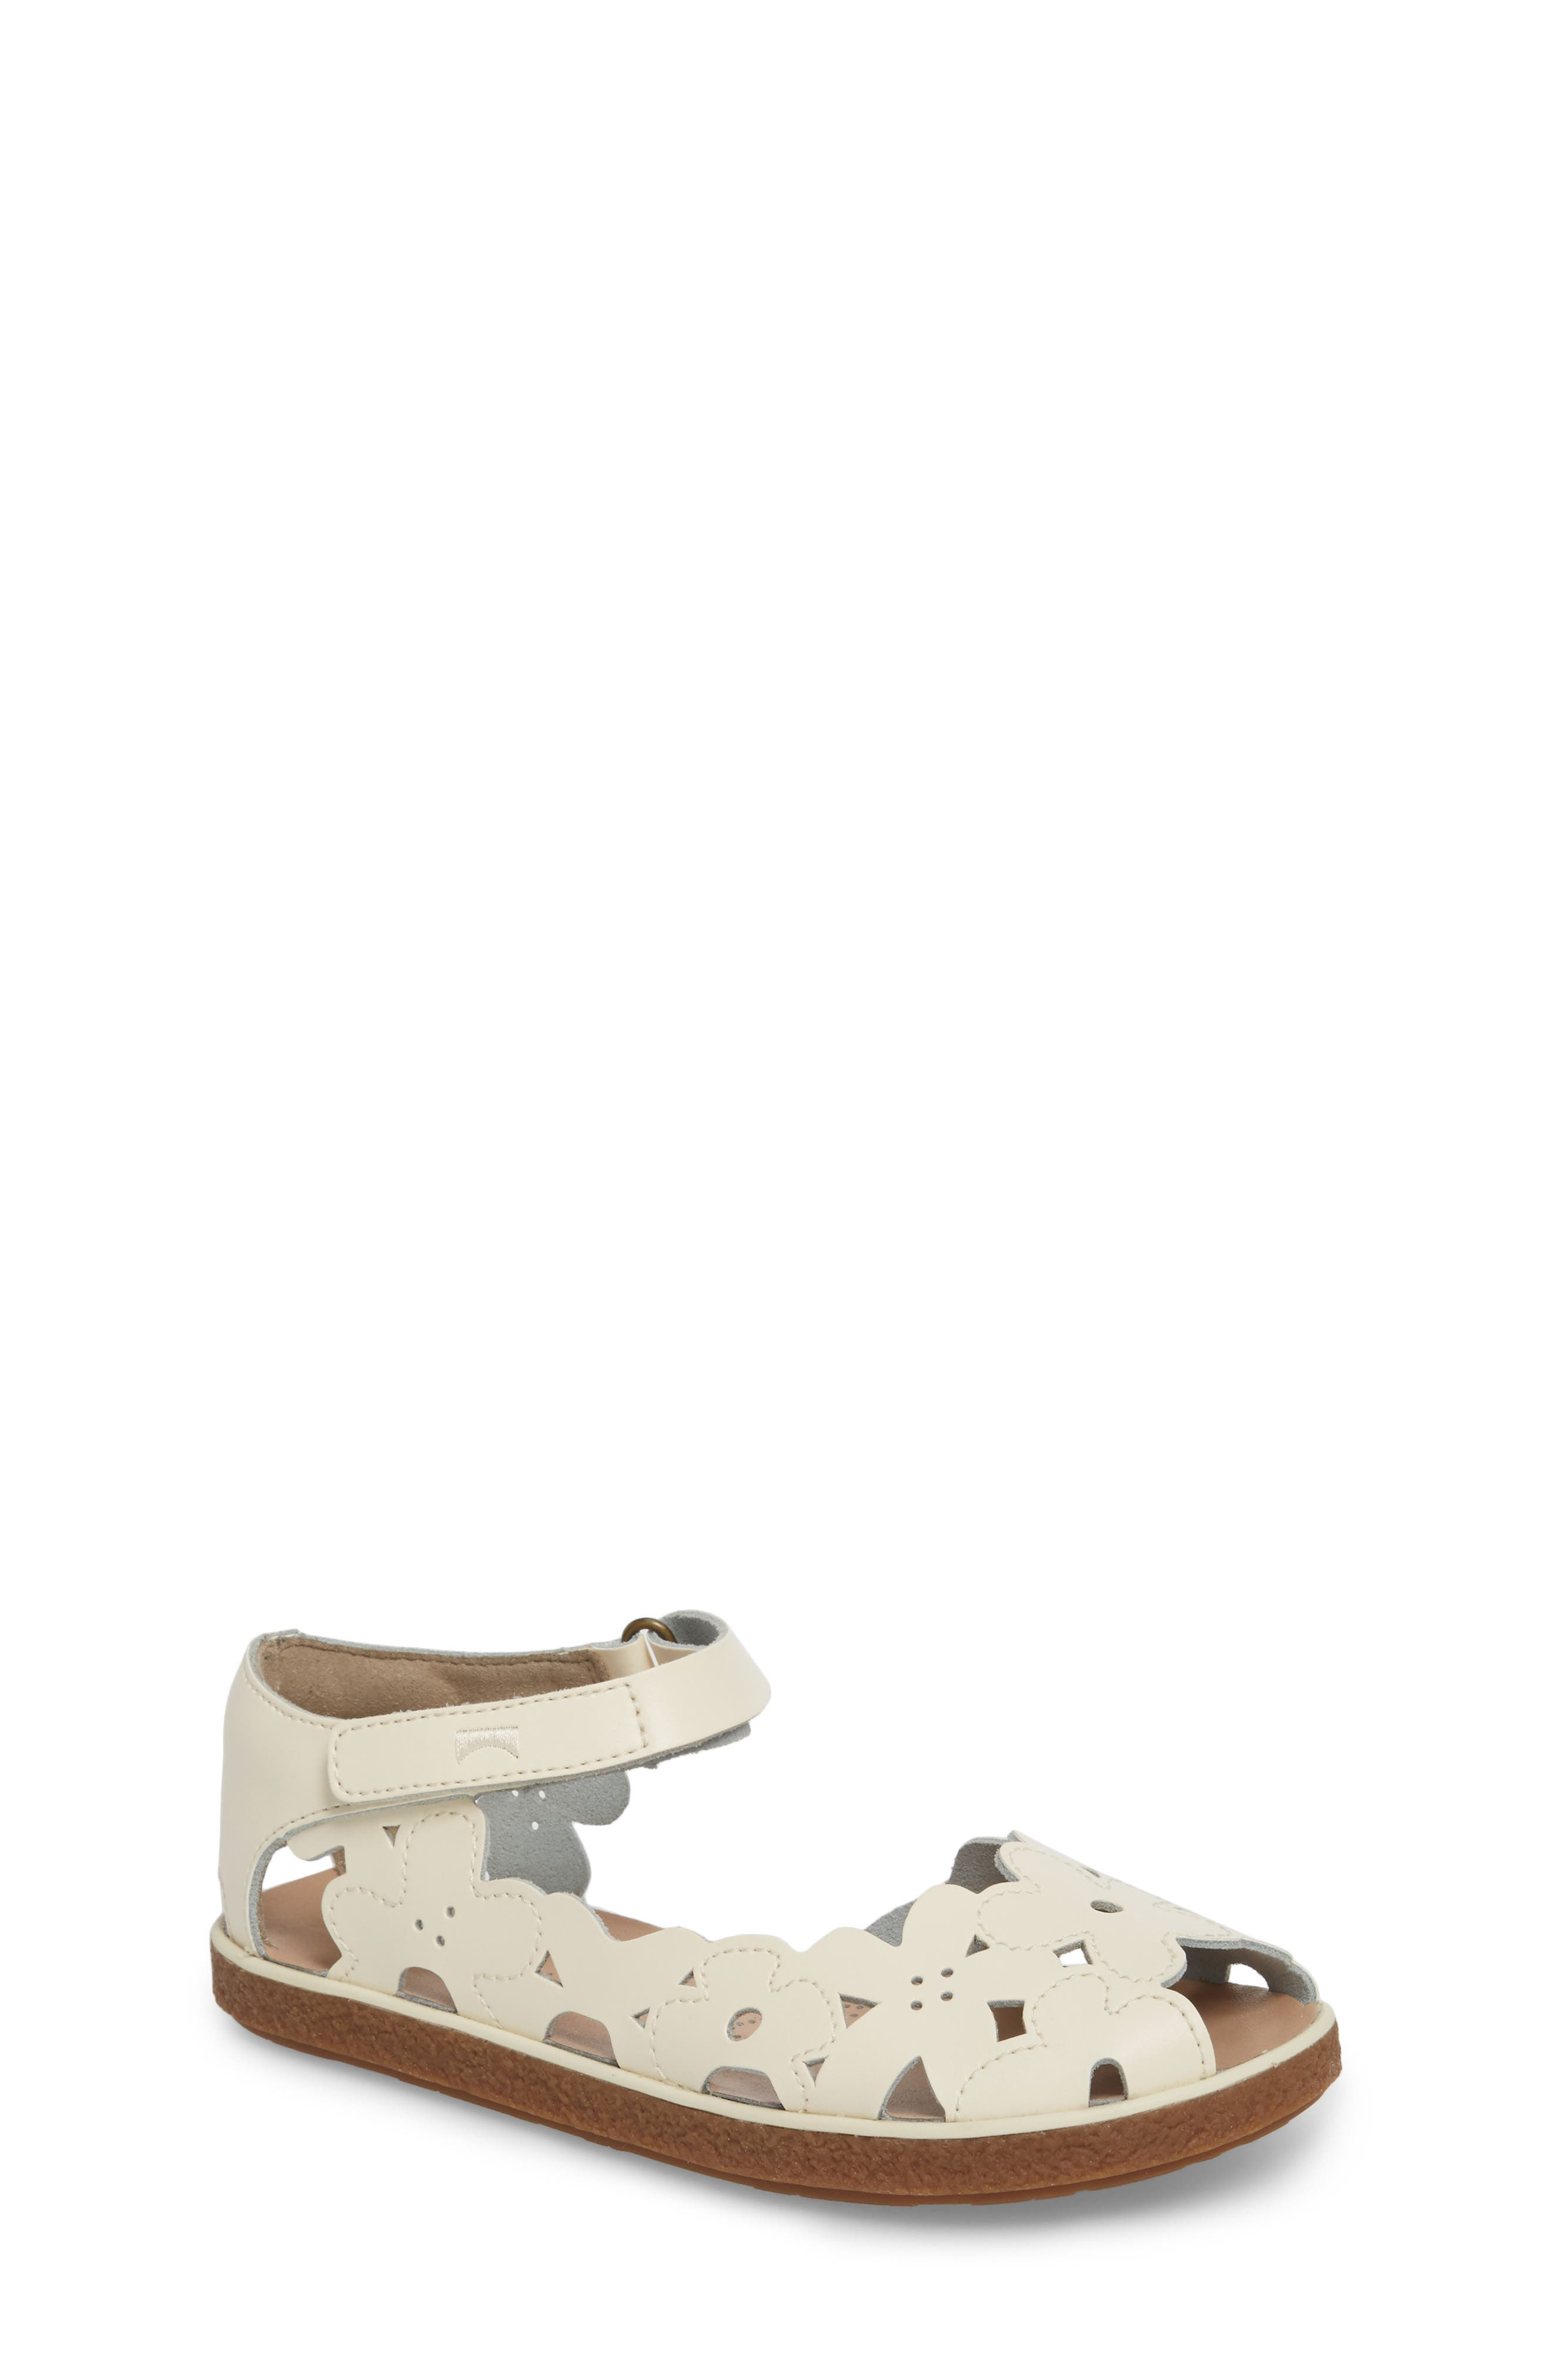 Twins Perforated Sandal,                             Main thumbnail 1, color,                             WHITE